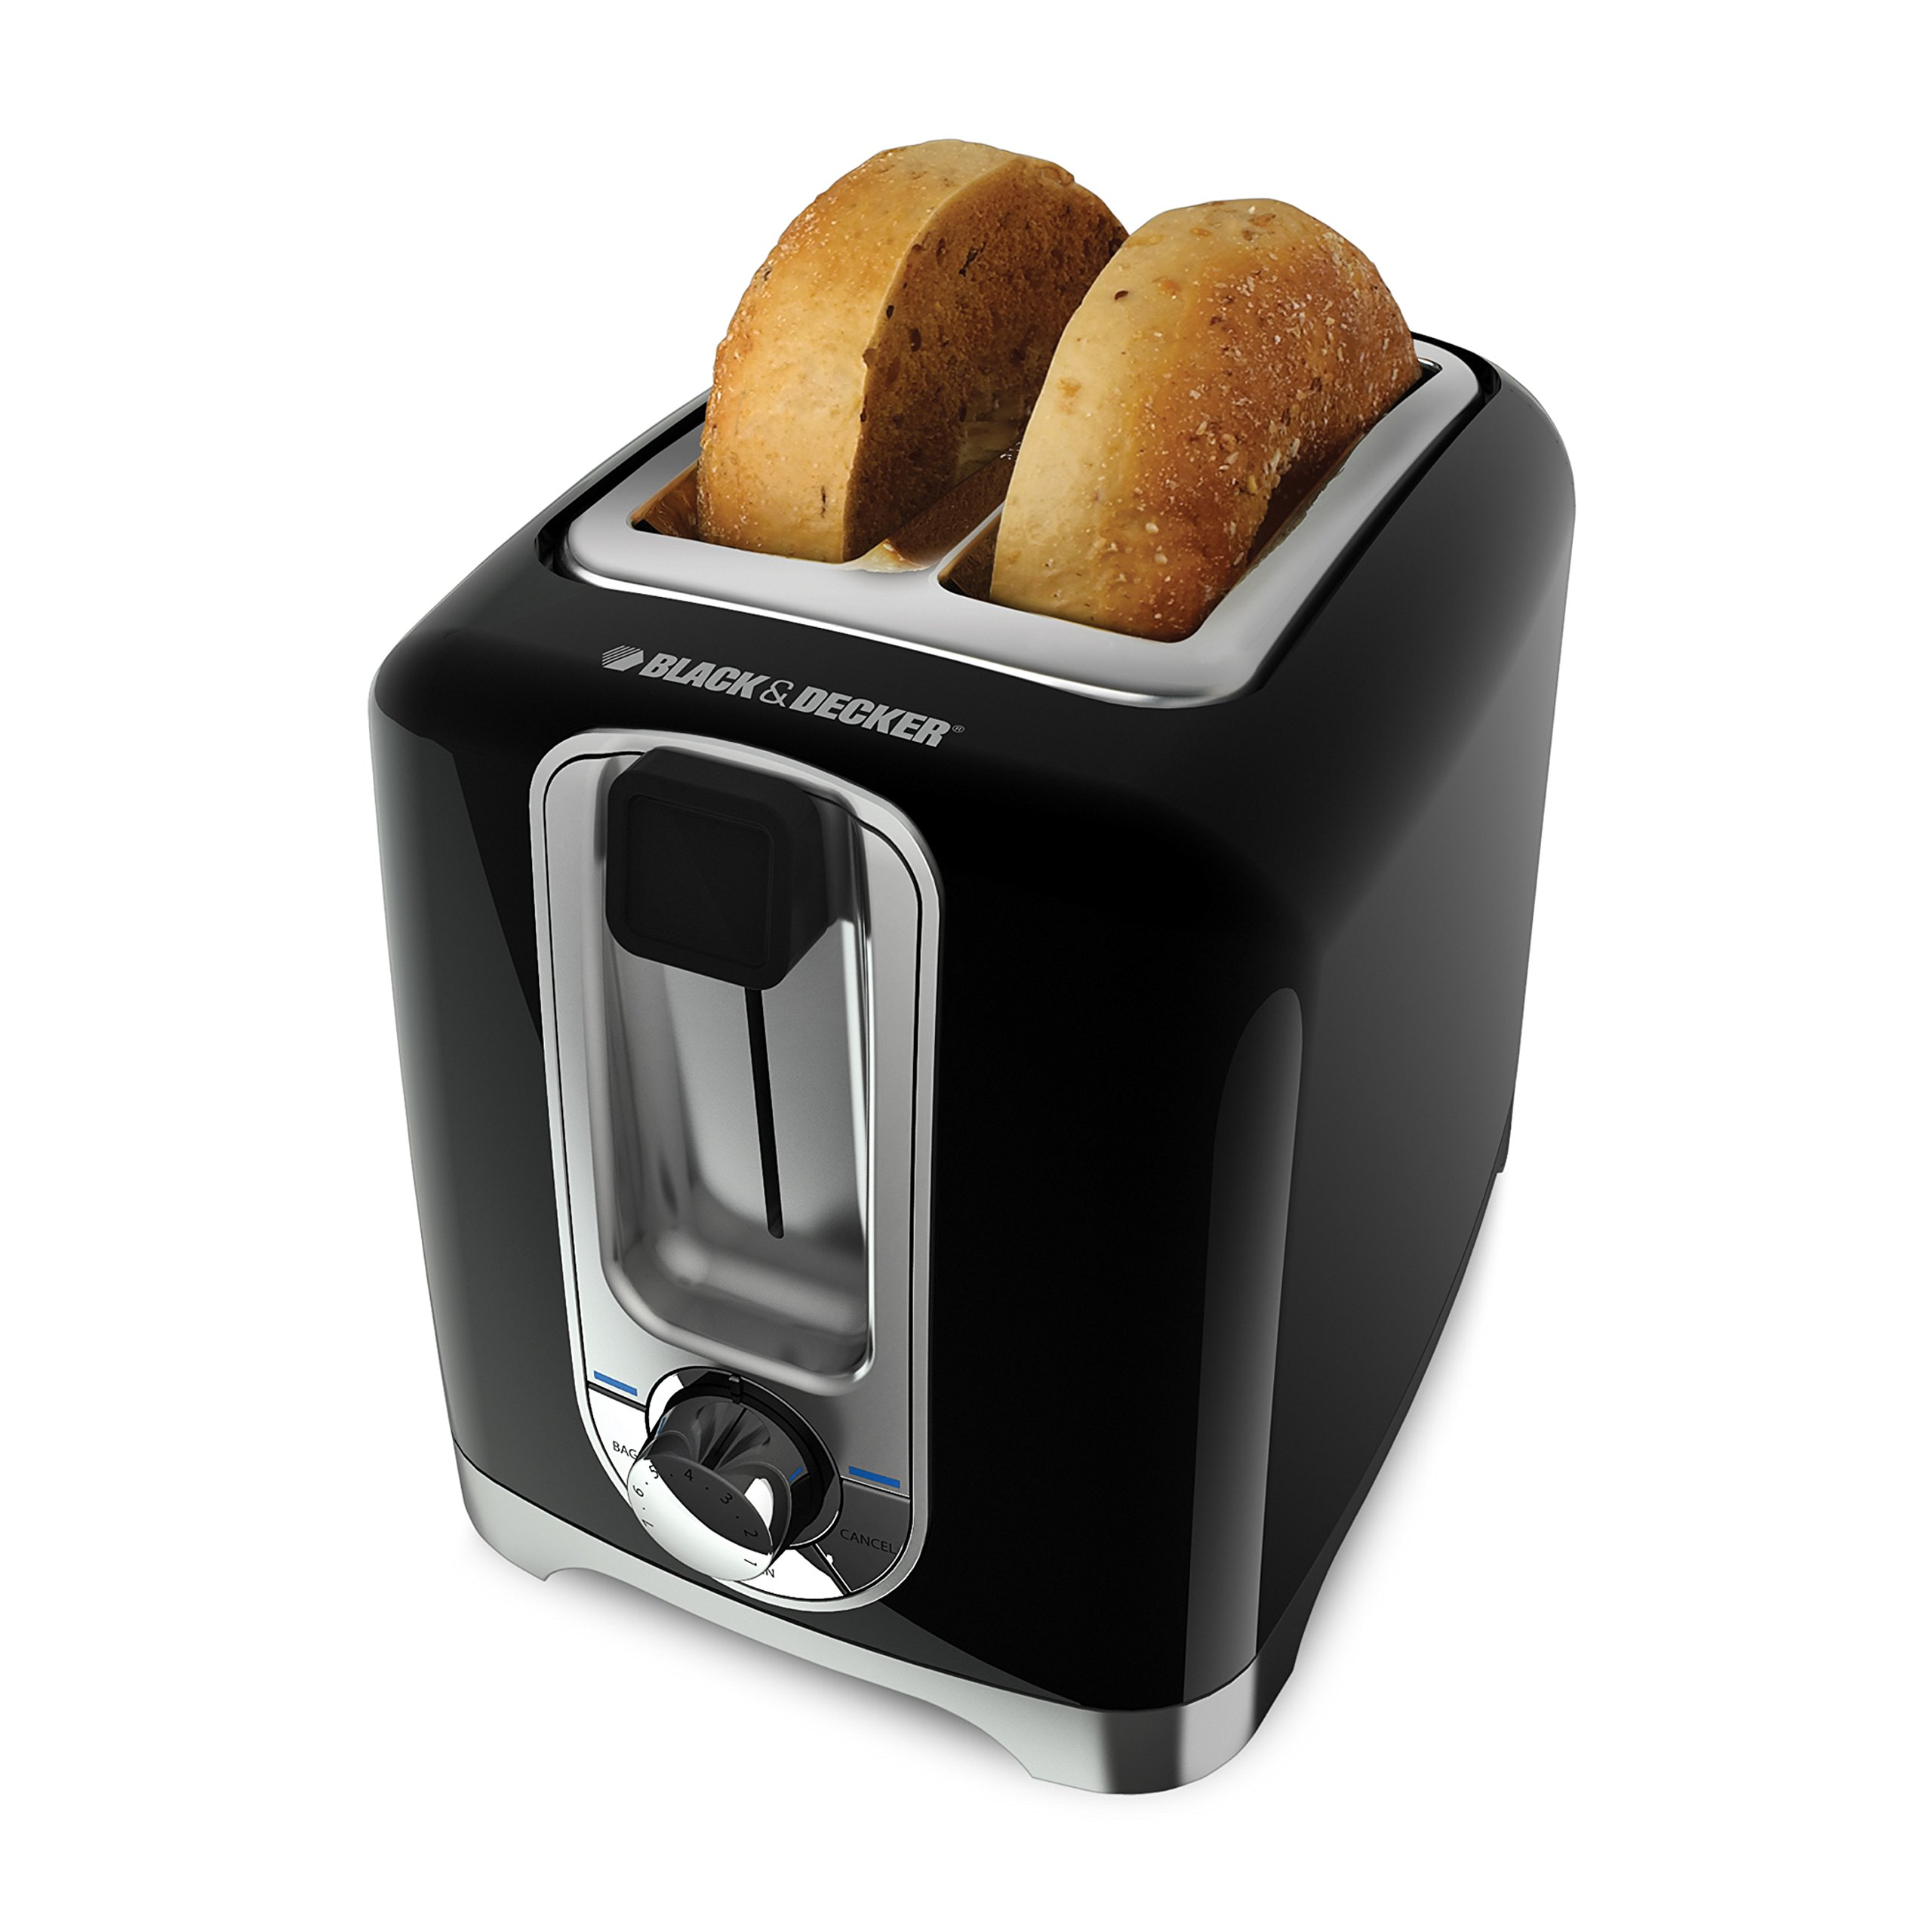 BLACK+DECKER 2-Slice Toaster, Square, Black with Chrome Accents, TR1256B